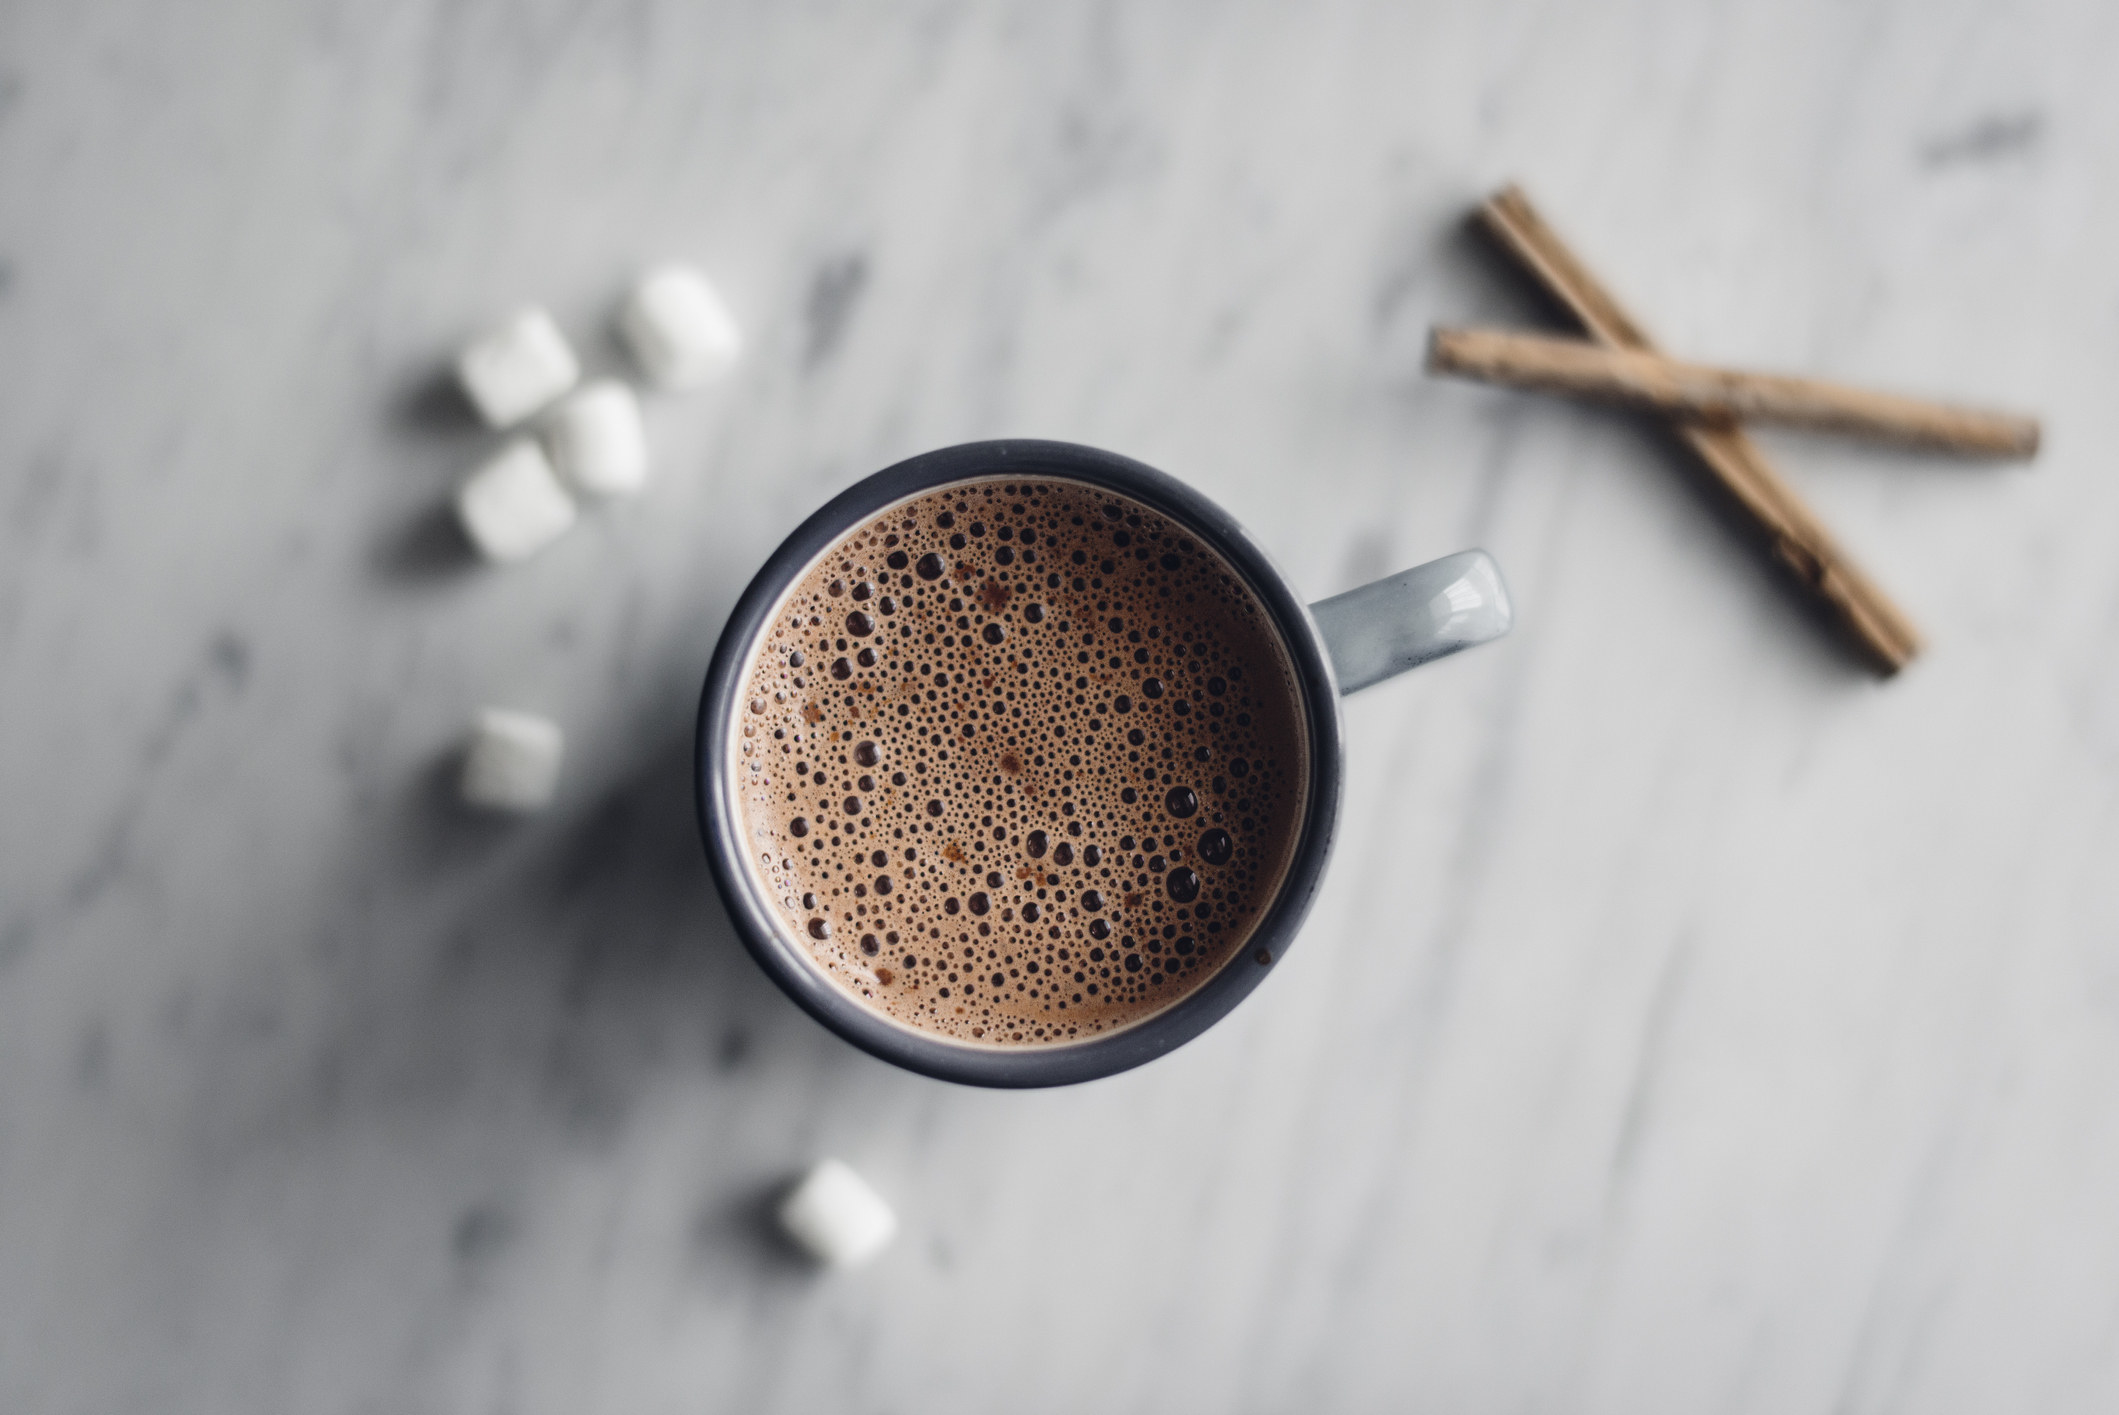 A mug of hot chocolate surrounded by marshmallows.